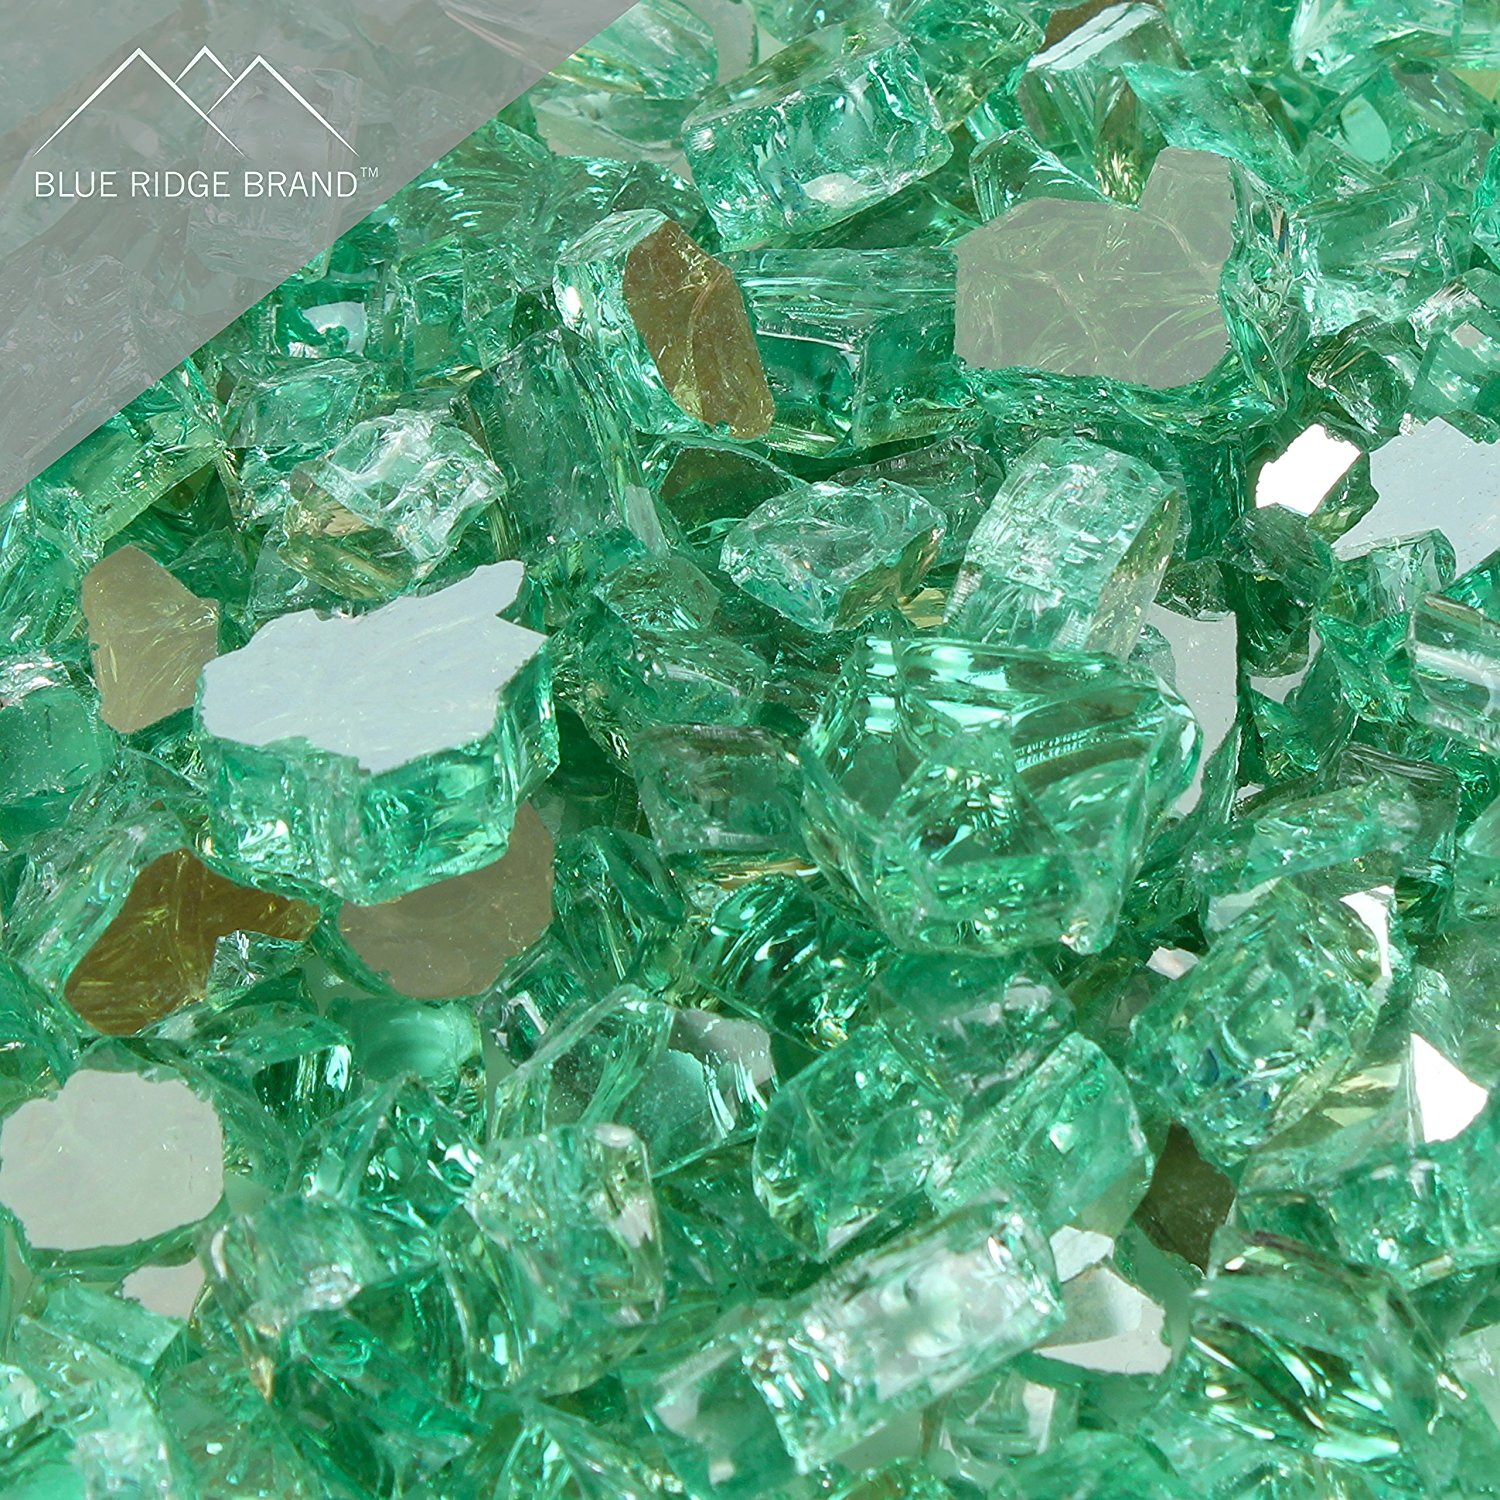 "Fire Pit Glass - Green Reflective Fire Glass 1/2"" - Reflective Fire Pit Glass Rocks - Blue Ridge Brand™ Reflective Glass for Fireplace and Landscaping 3, 5, 10, 20, 50 Pounds"